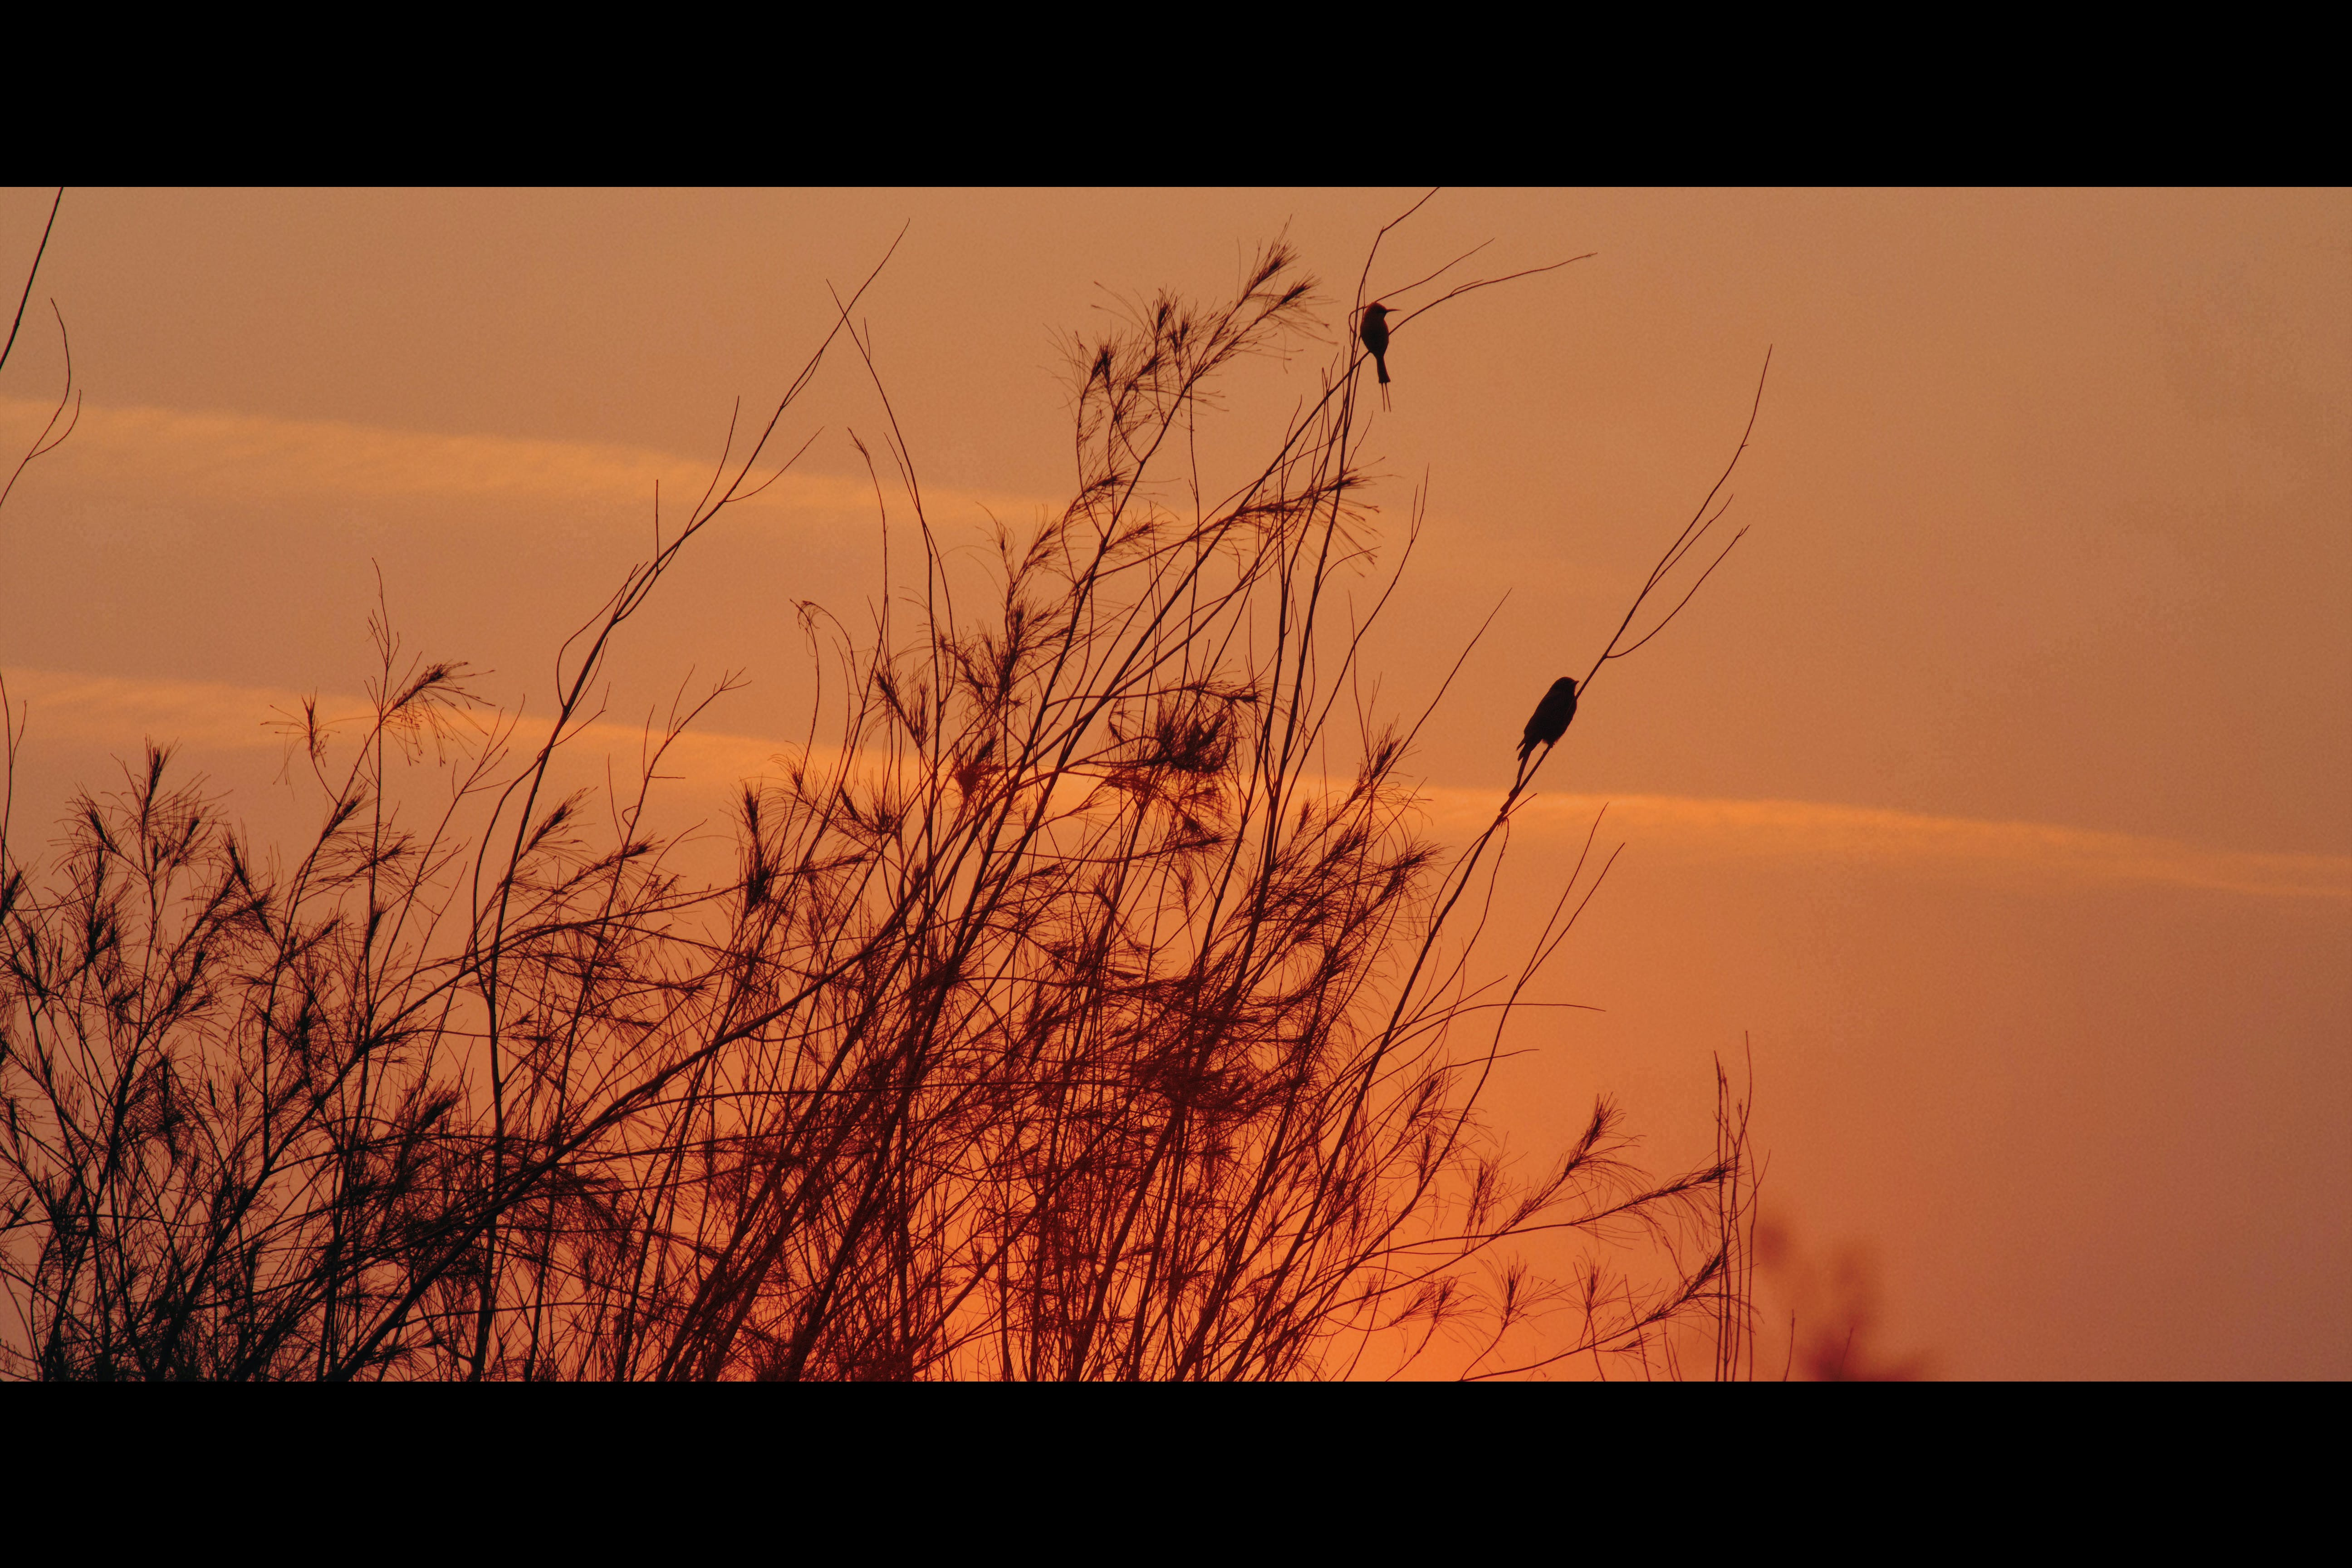 Free stock photo of bird, filmstrip, golden sunset, silhouette